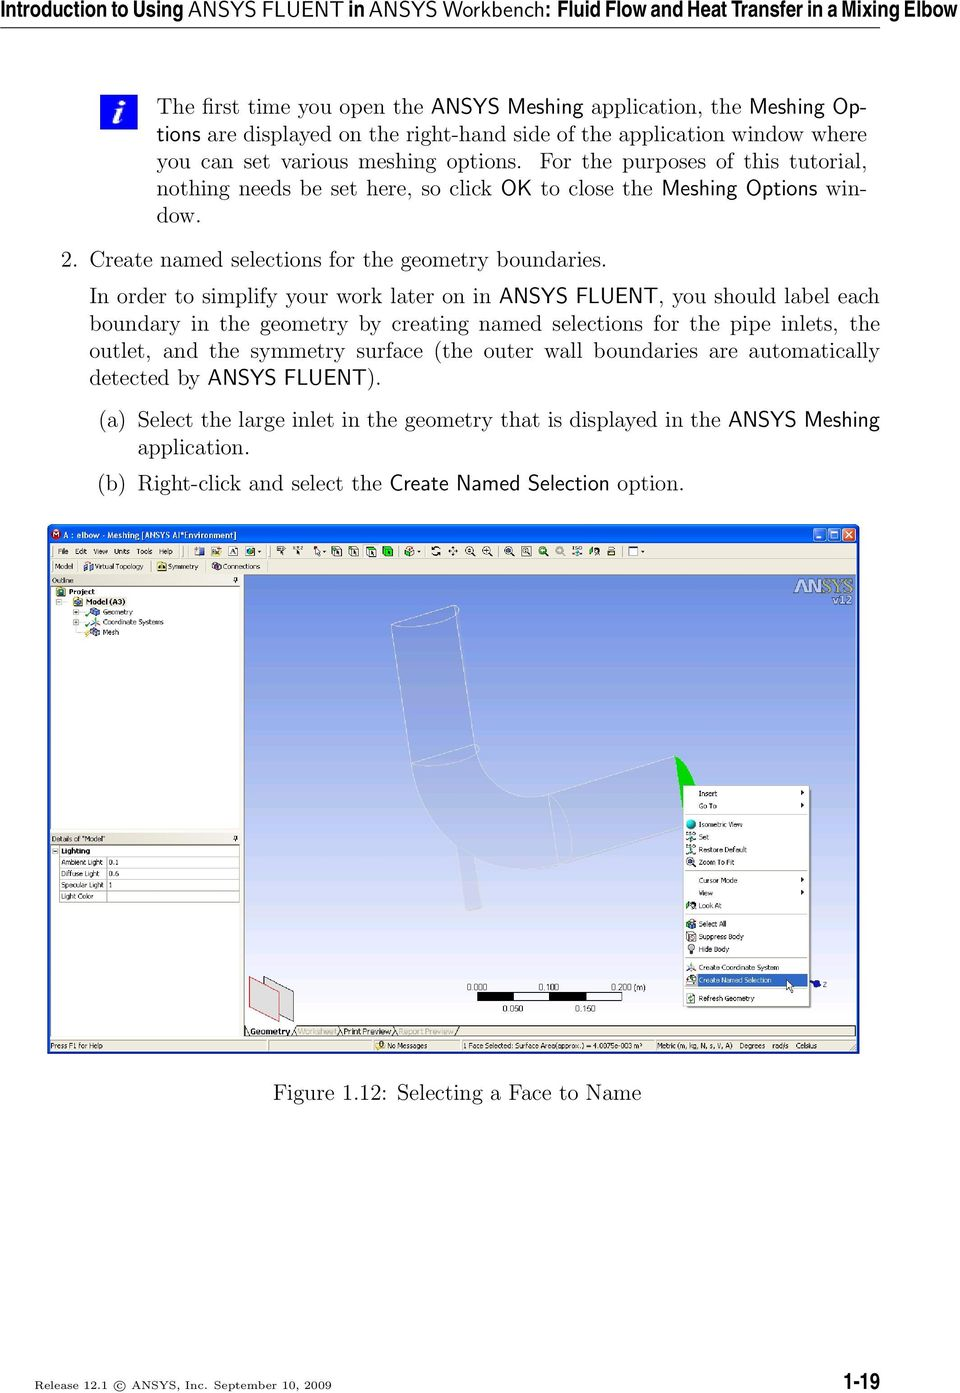 Tutorial 1  Introduction to Using ANSYS FLUENT in ANSYS